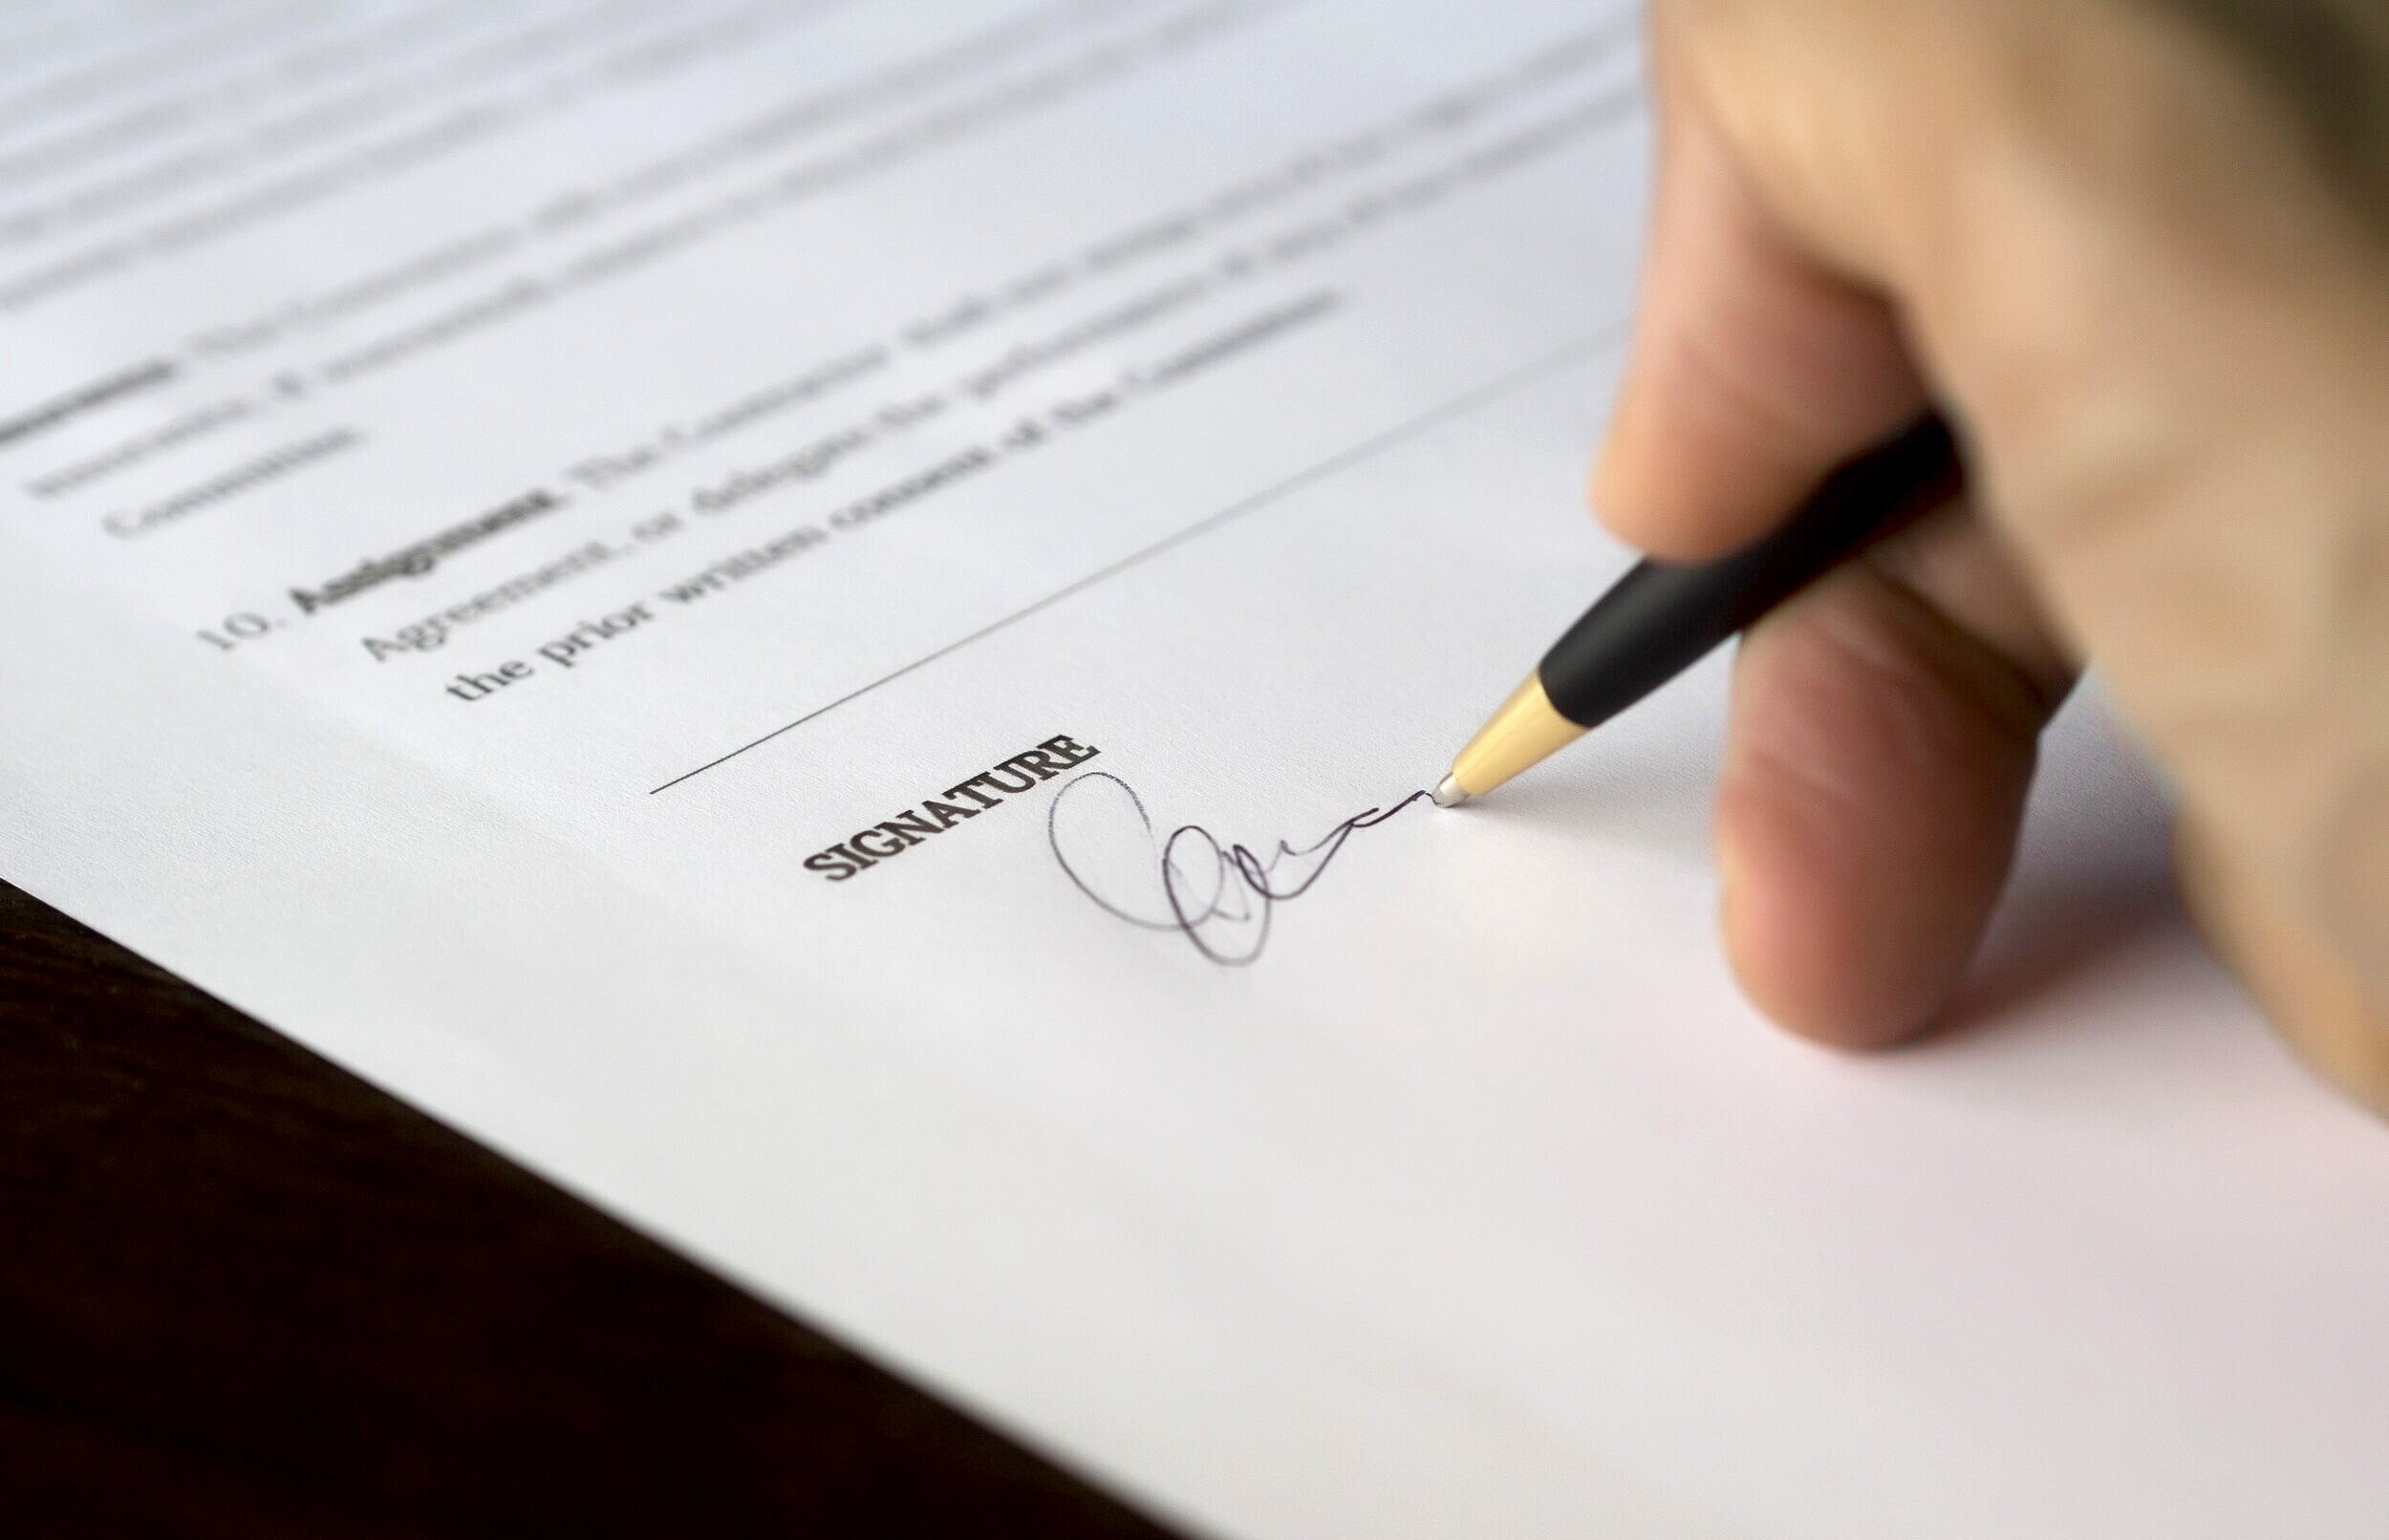 Power of attorney (POA) is a document that grants a specific person, called an agent, the authority to make important decisions on behalf of another person, called the principal.